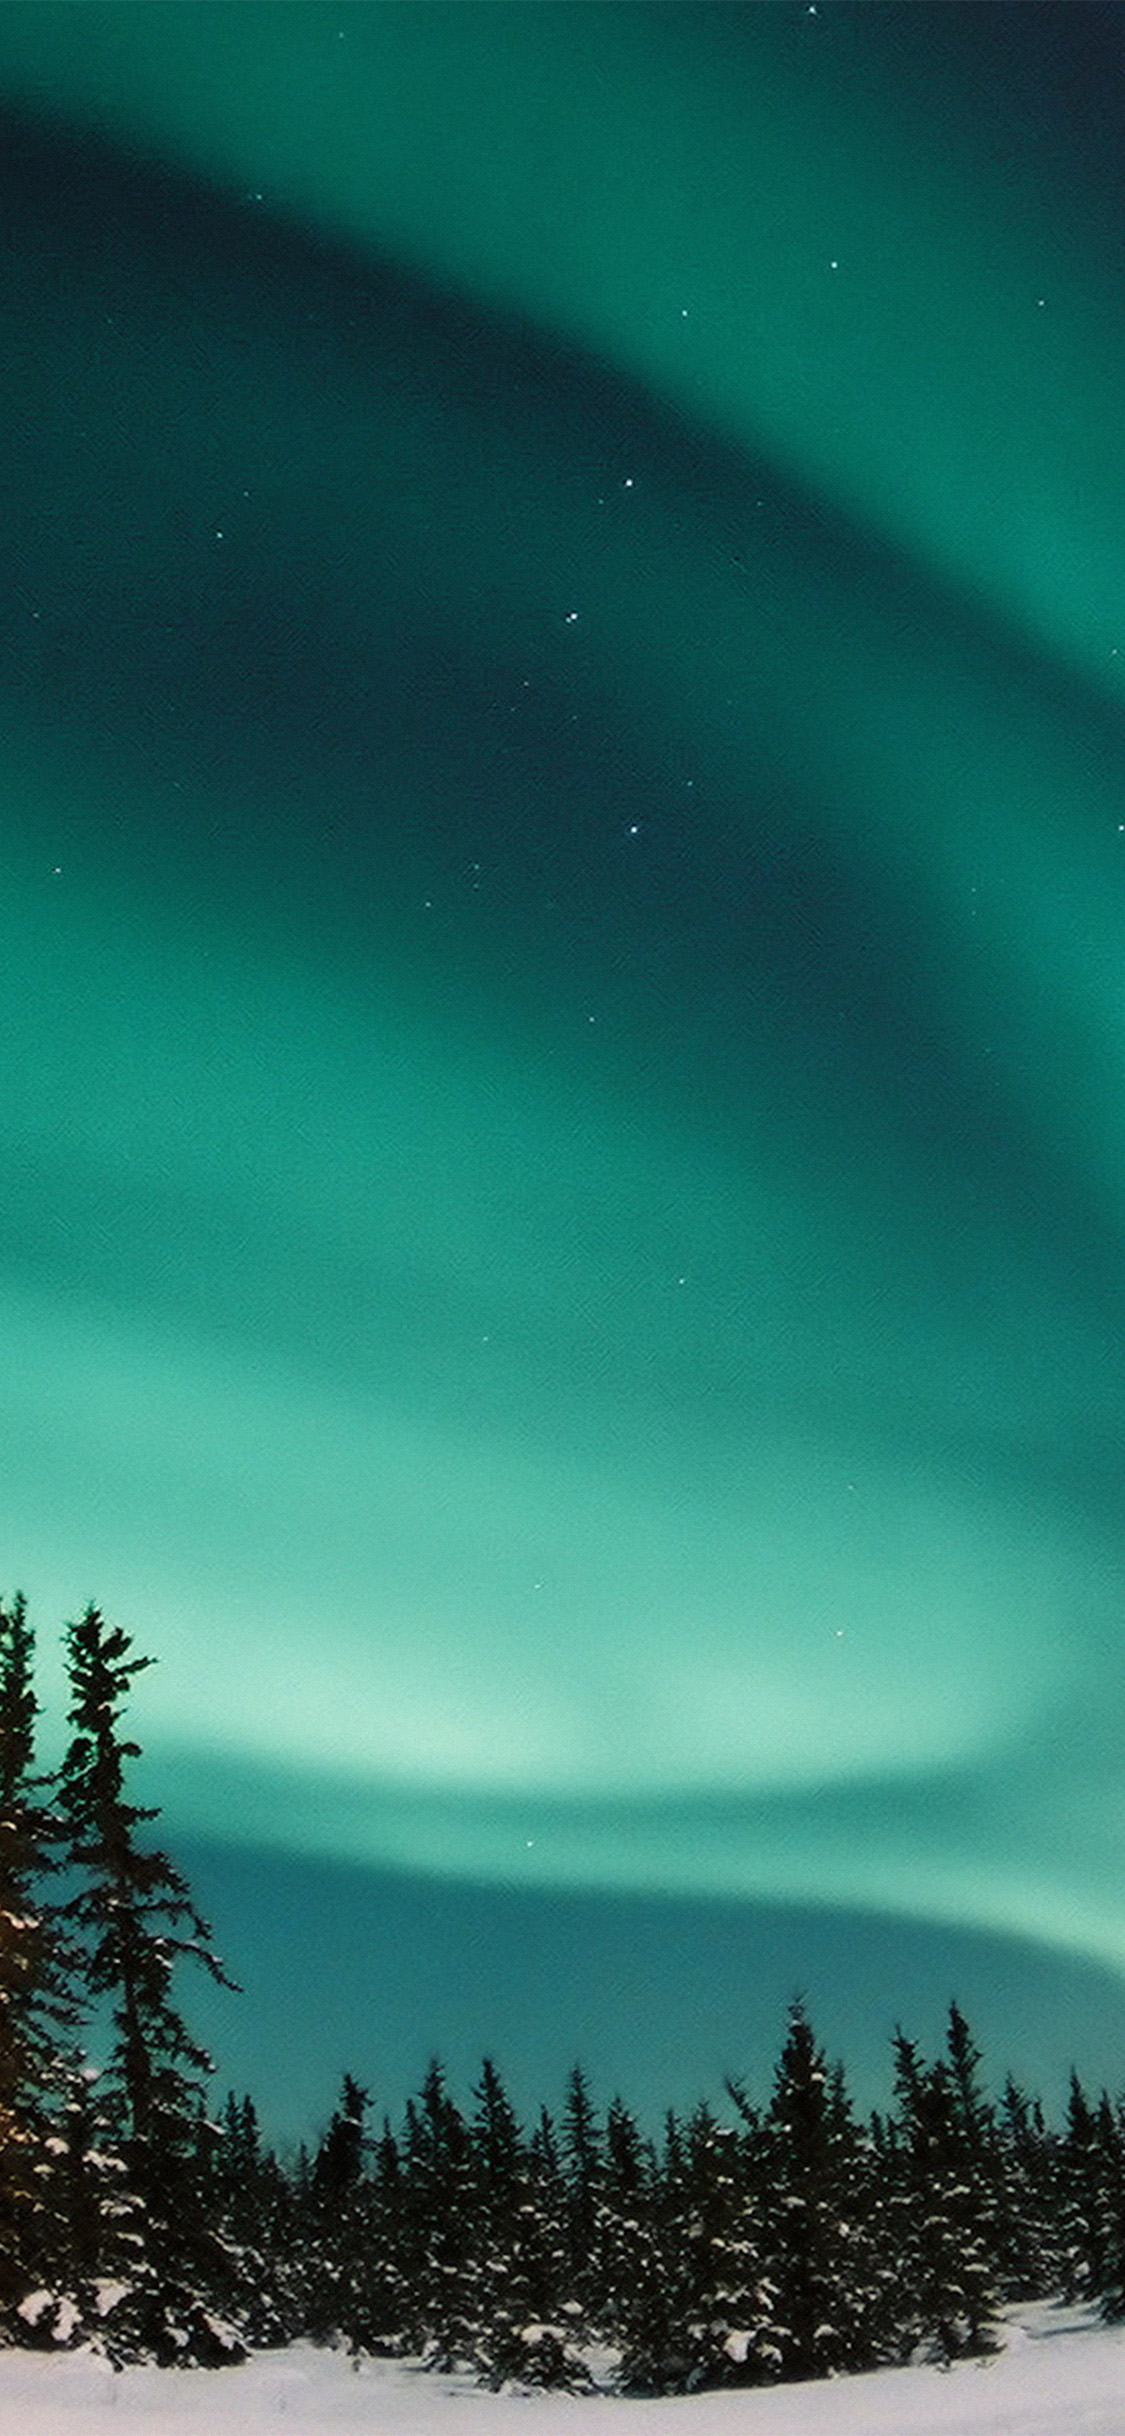 iPhonexpapers.com-Apple-iPhone-wallpaper-nw70-aurora-blue-night-sky-space-nature-winter